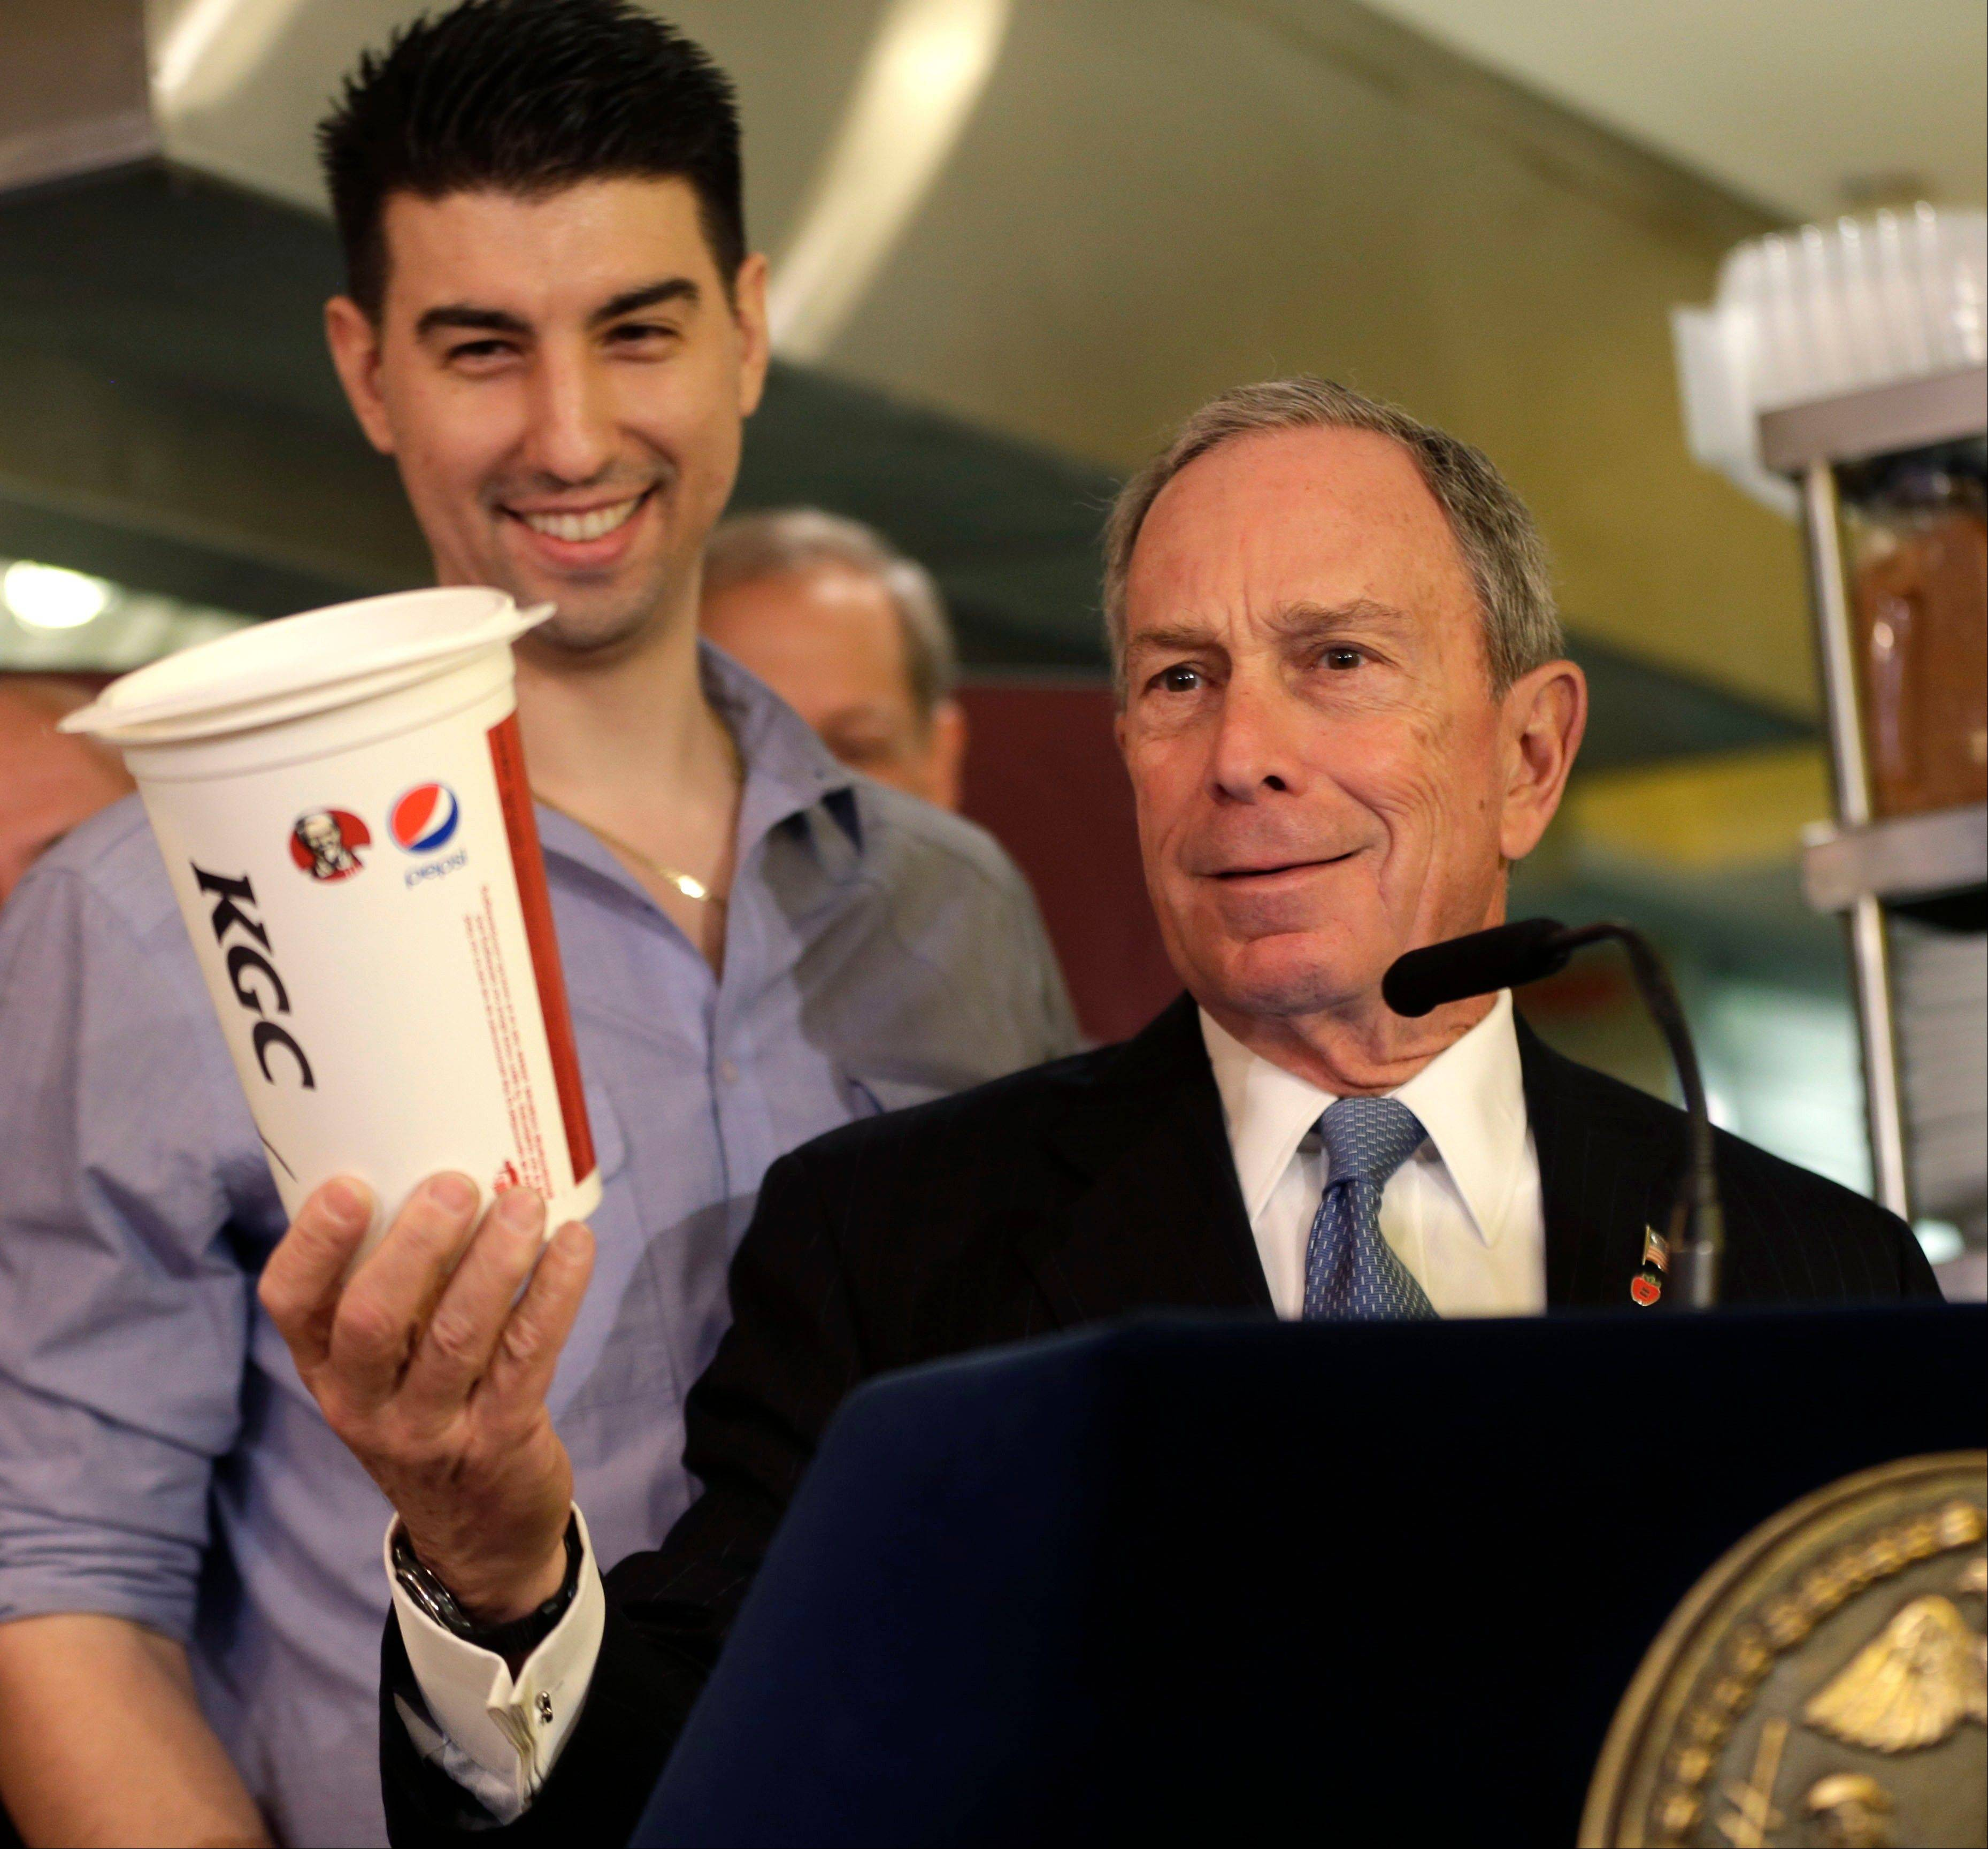 New York City Mayor Michael Bloomberg looks at a 64-ounce cup, as Lucky's Cafe owner Greg Anagnostopoulos, left, stands behind him. An appeals court ruled Tuesday that New York City's Board of Health exceeded its legal authority and acted unconstitutionally when it tried to put a size limit on soft drinks served in city restaurants.